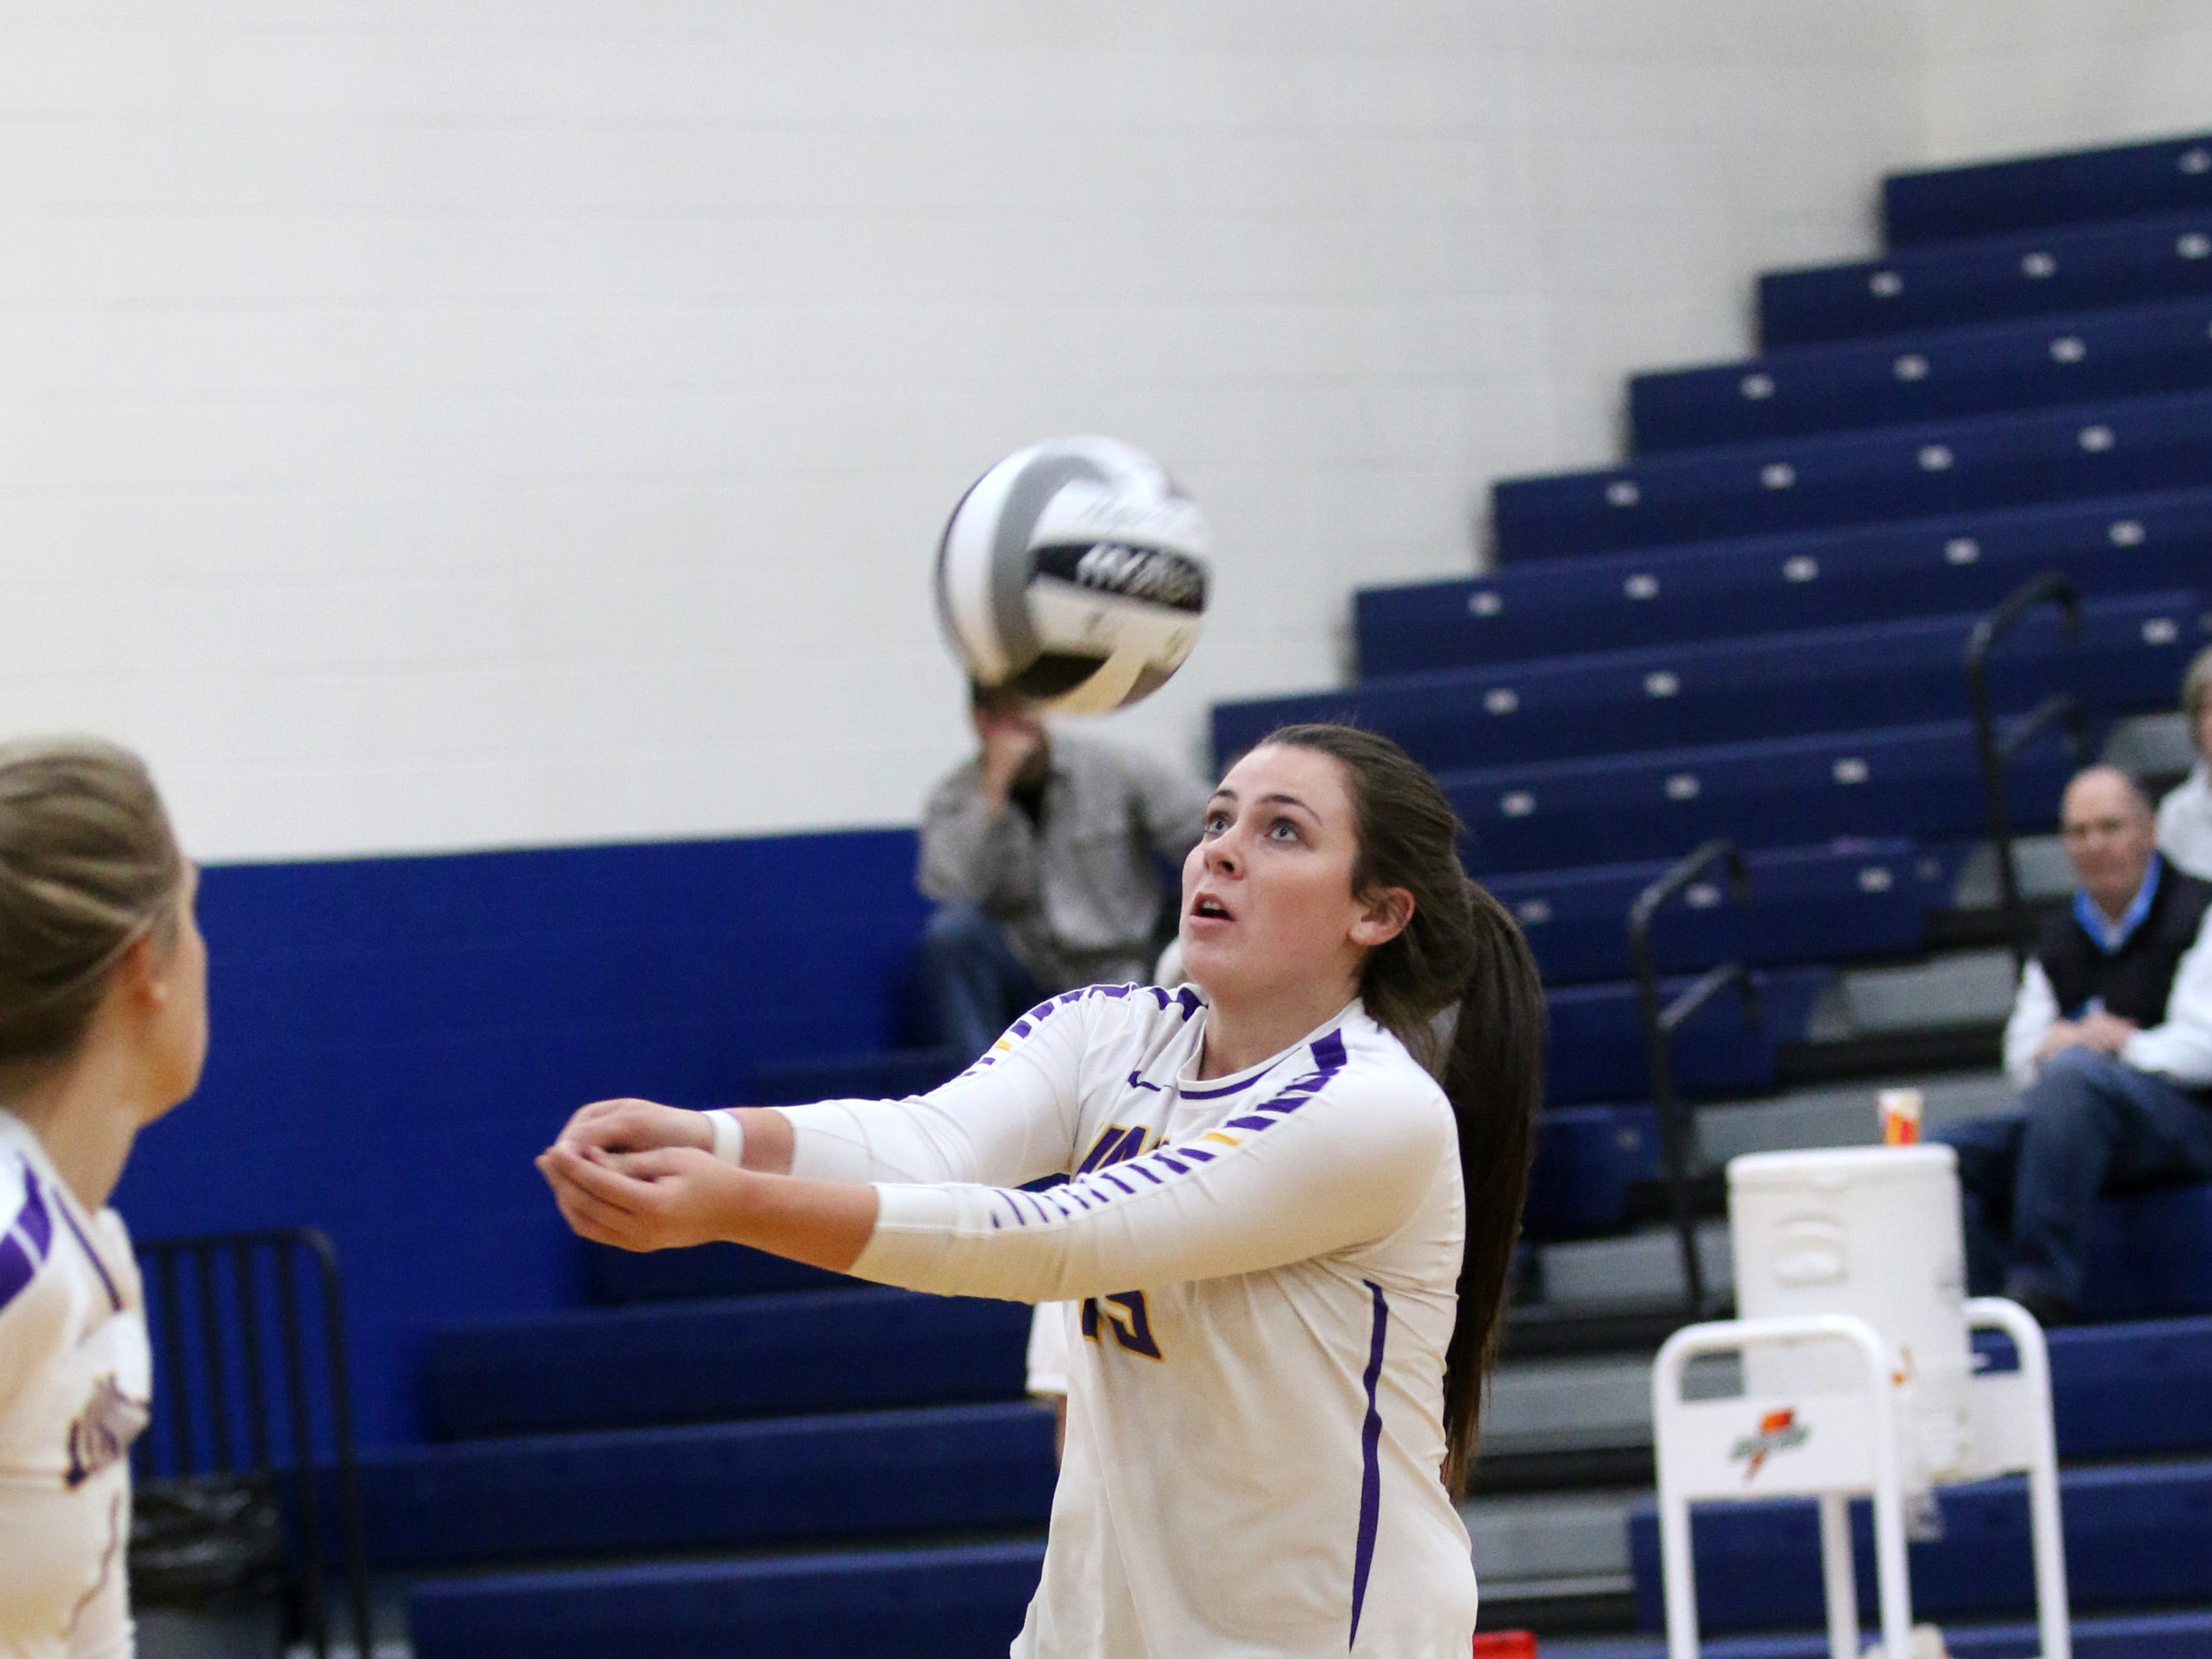 Unioto defeated Fairfield Union Wednesday night 3-0 at Southeastern High School in Chillicothe, Ohio, advancing them to the district finals against Sheridan.